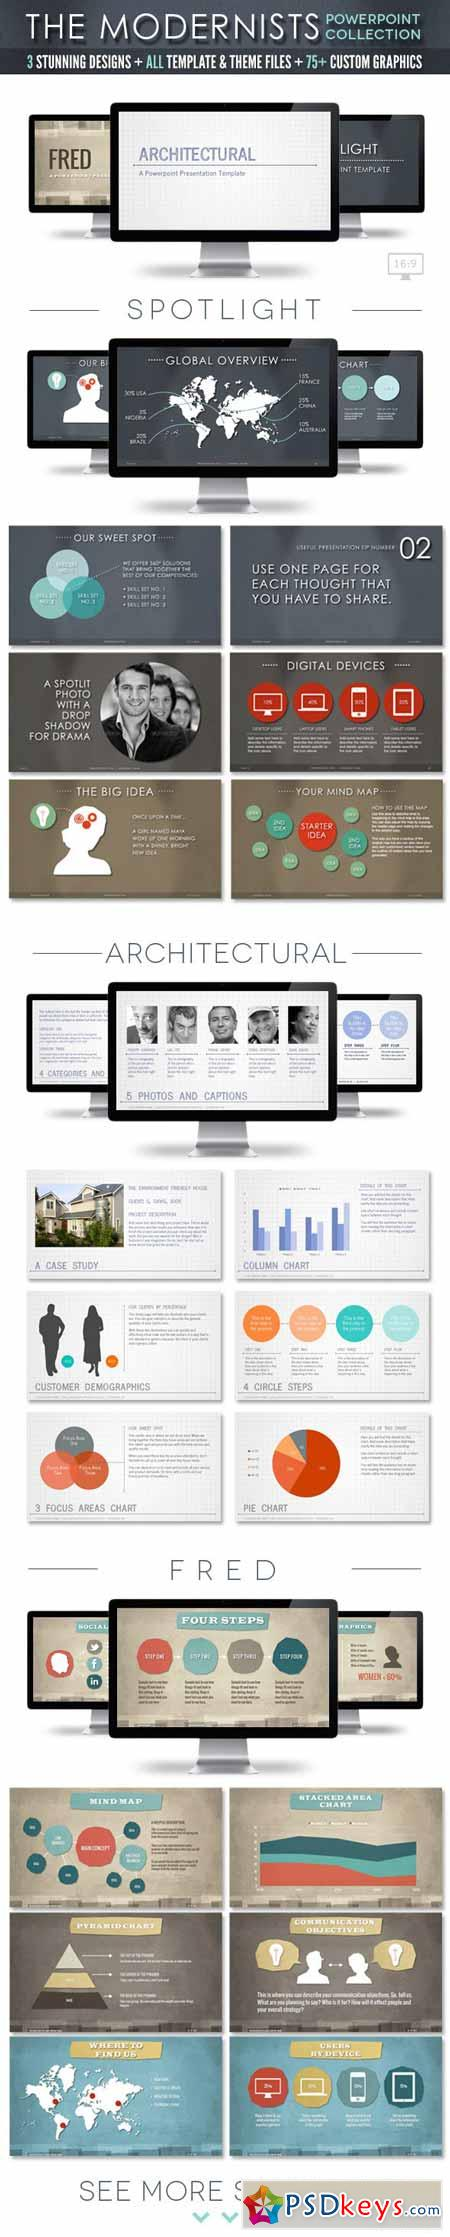 The Modernists Collection - Powerpoint Templates 4475606